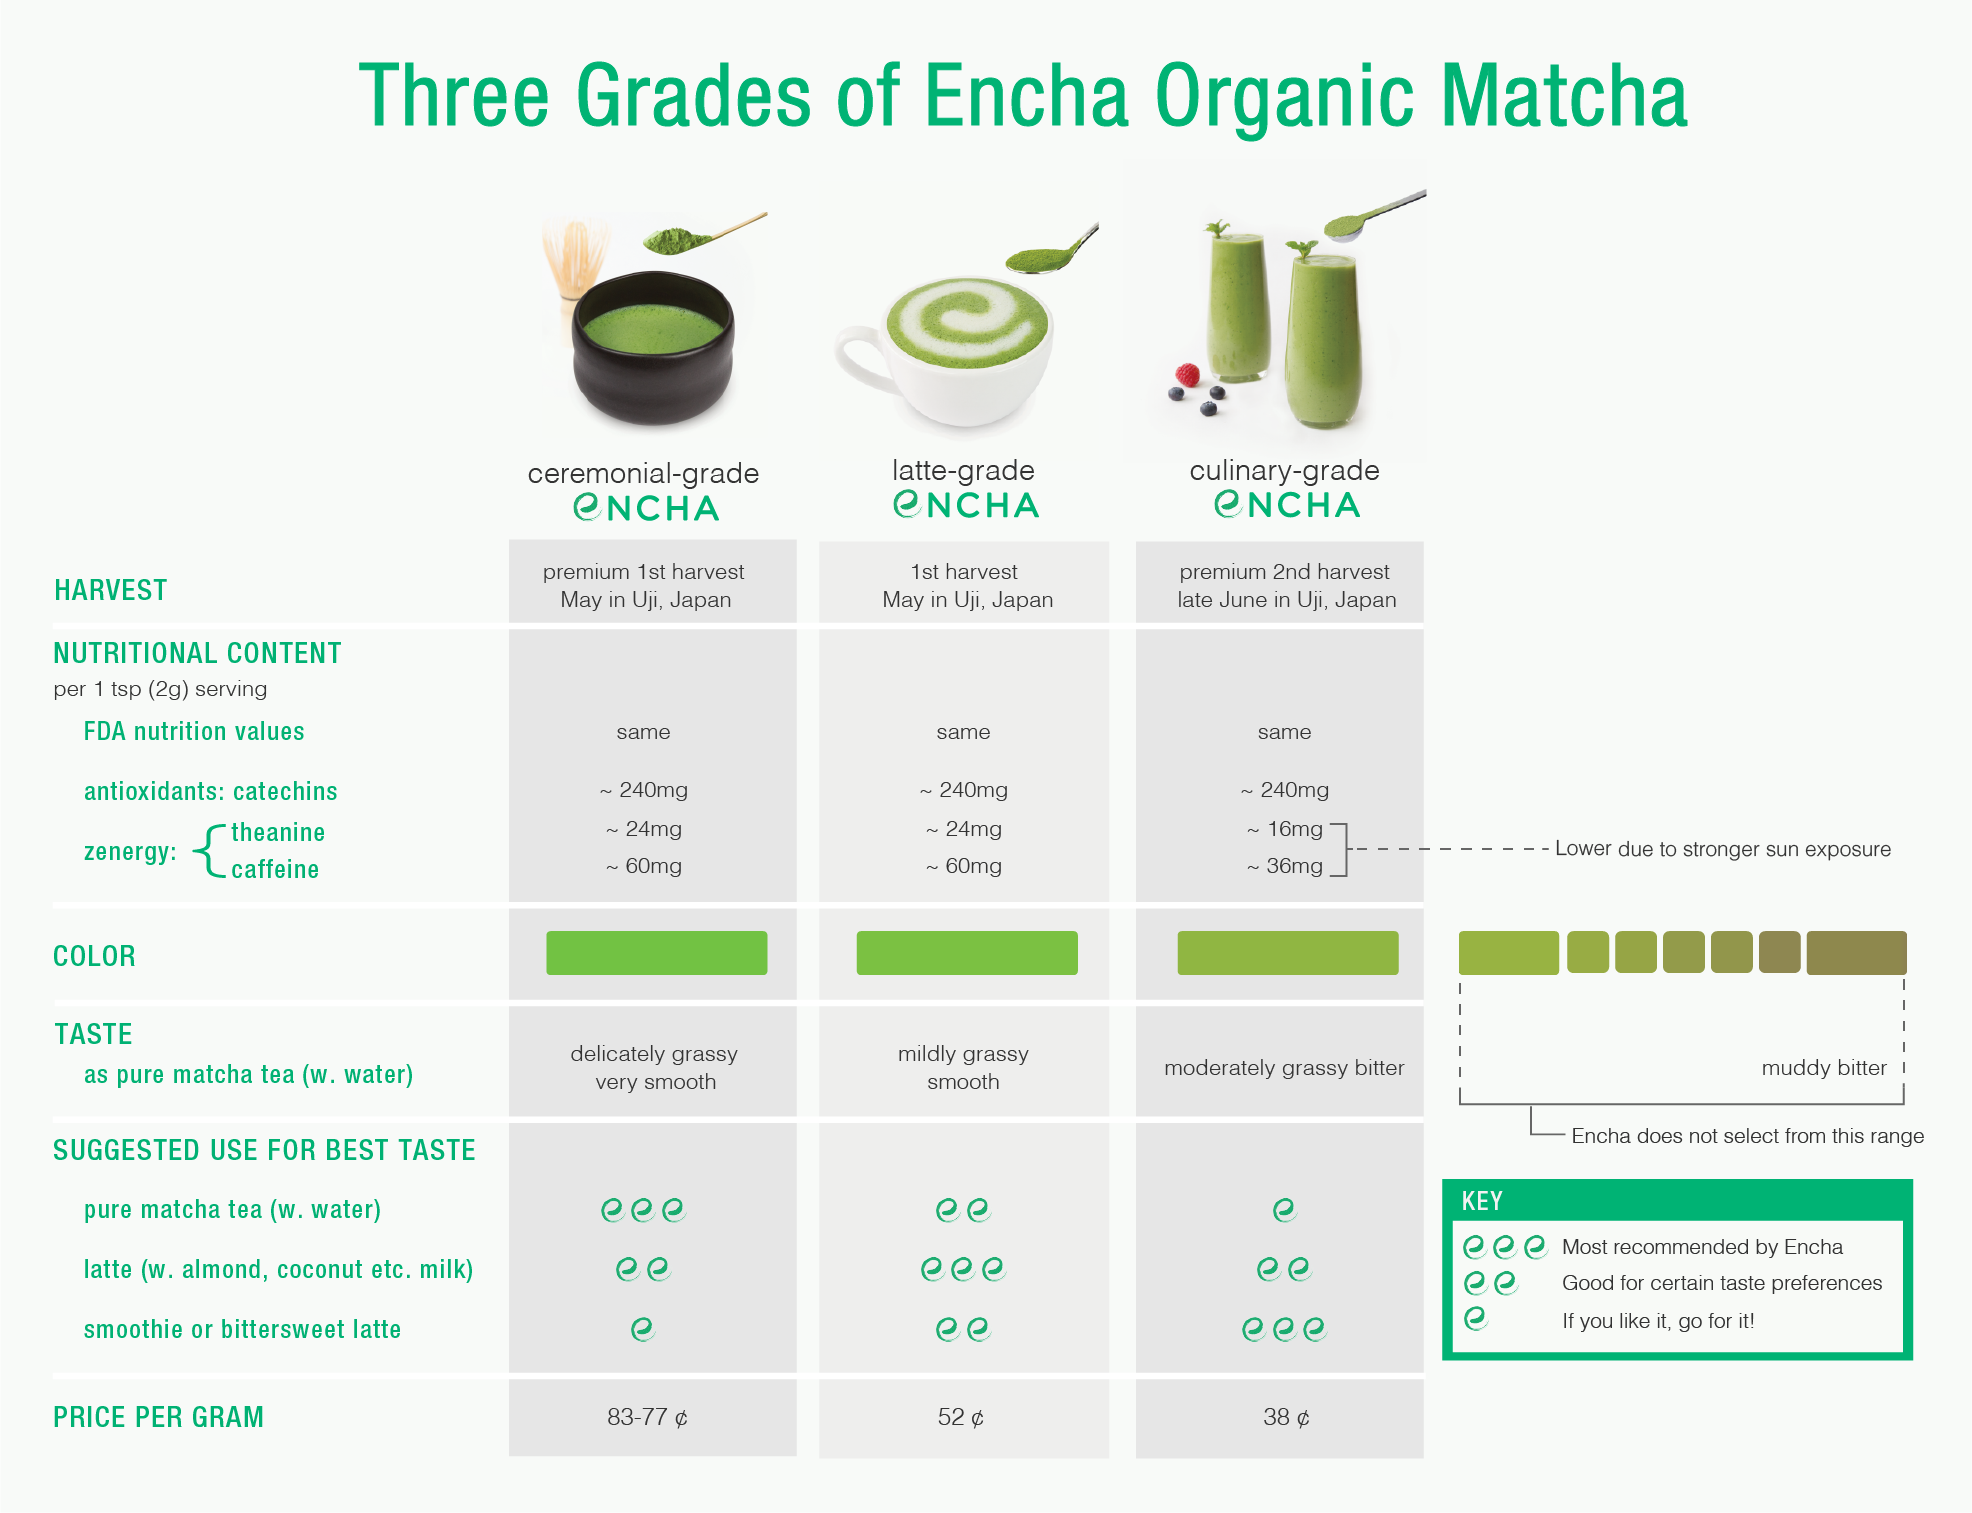 Encha organic matcha grade difference